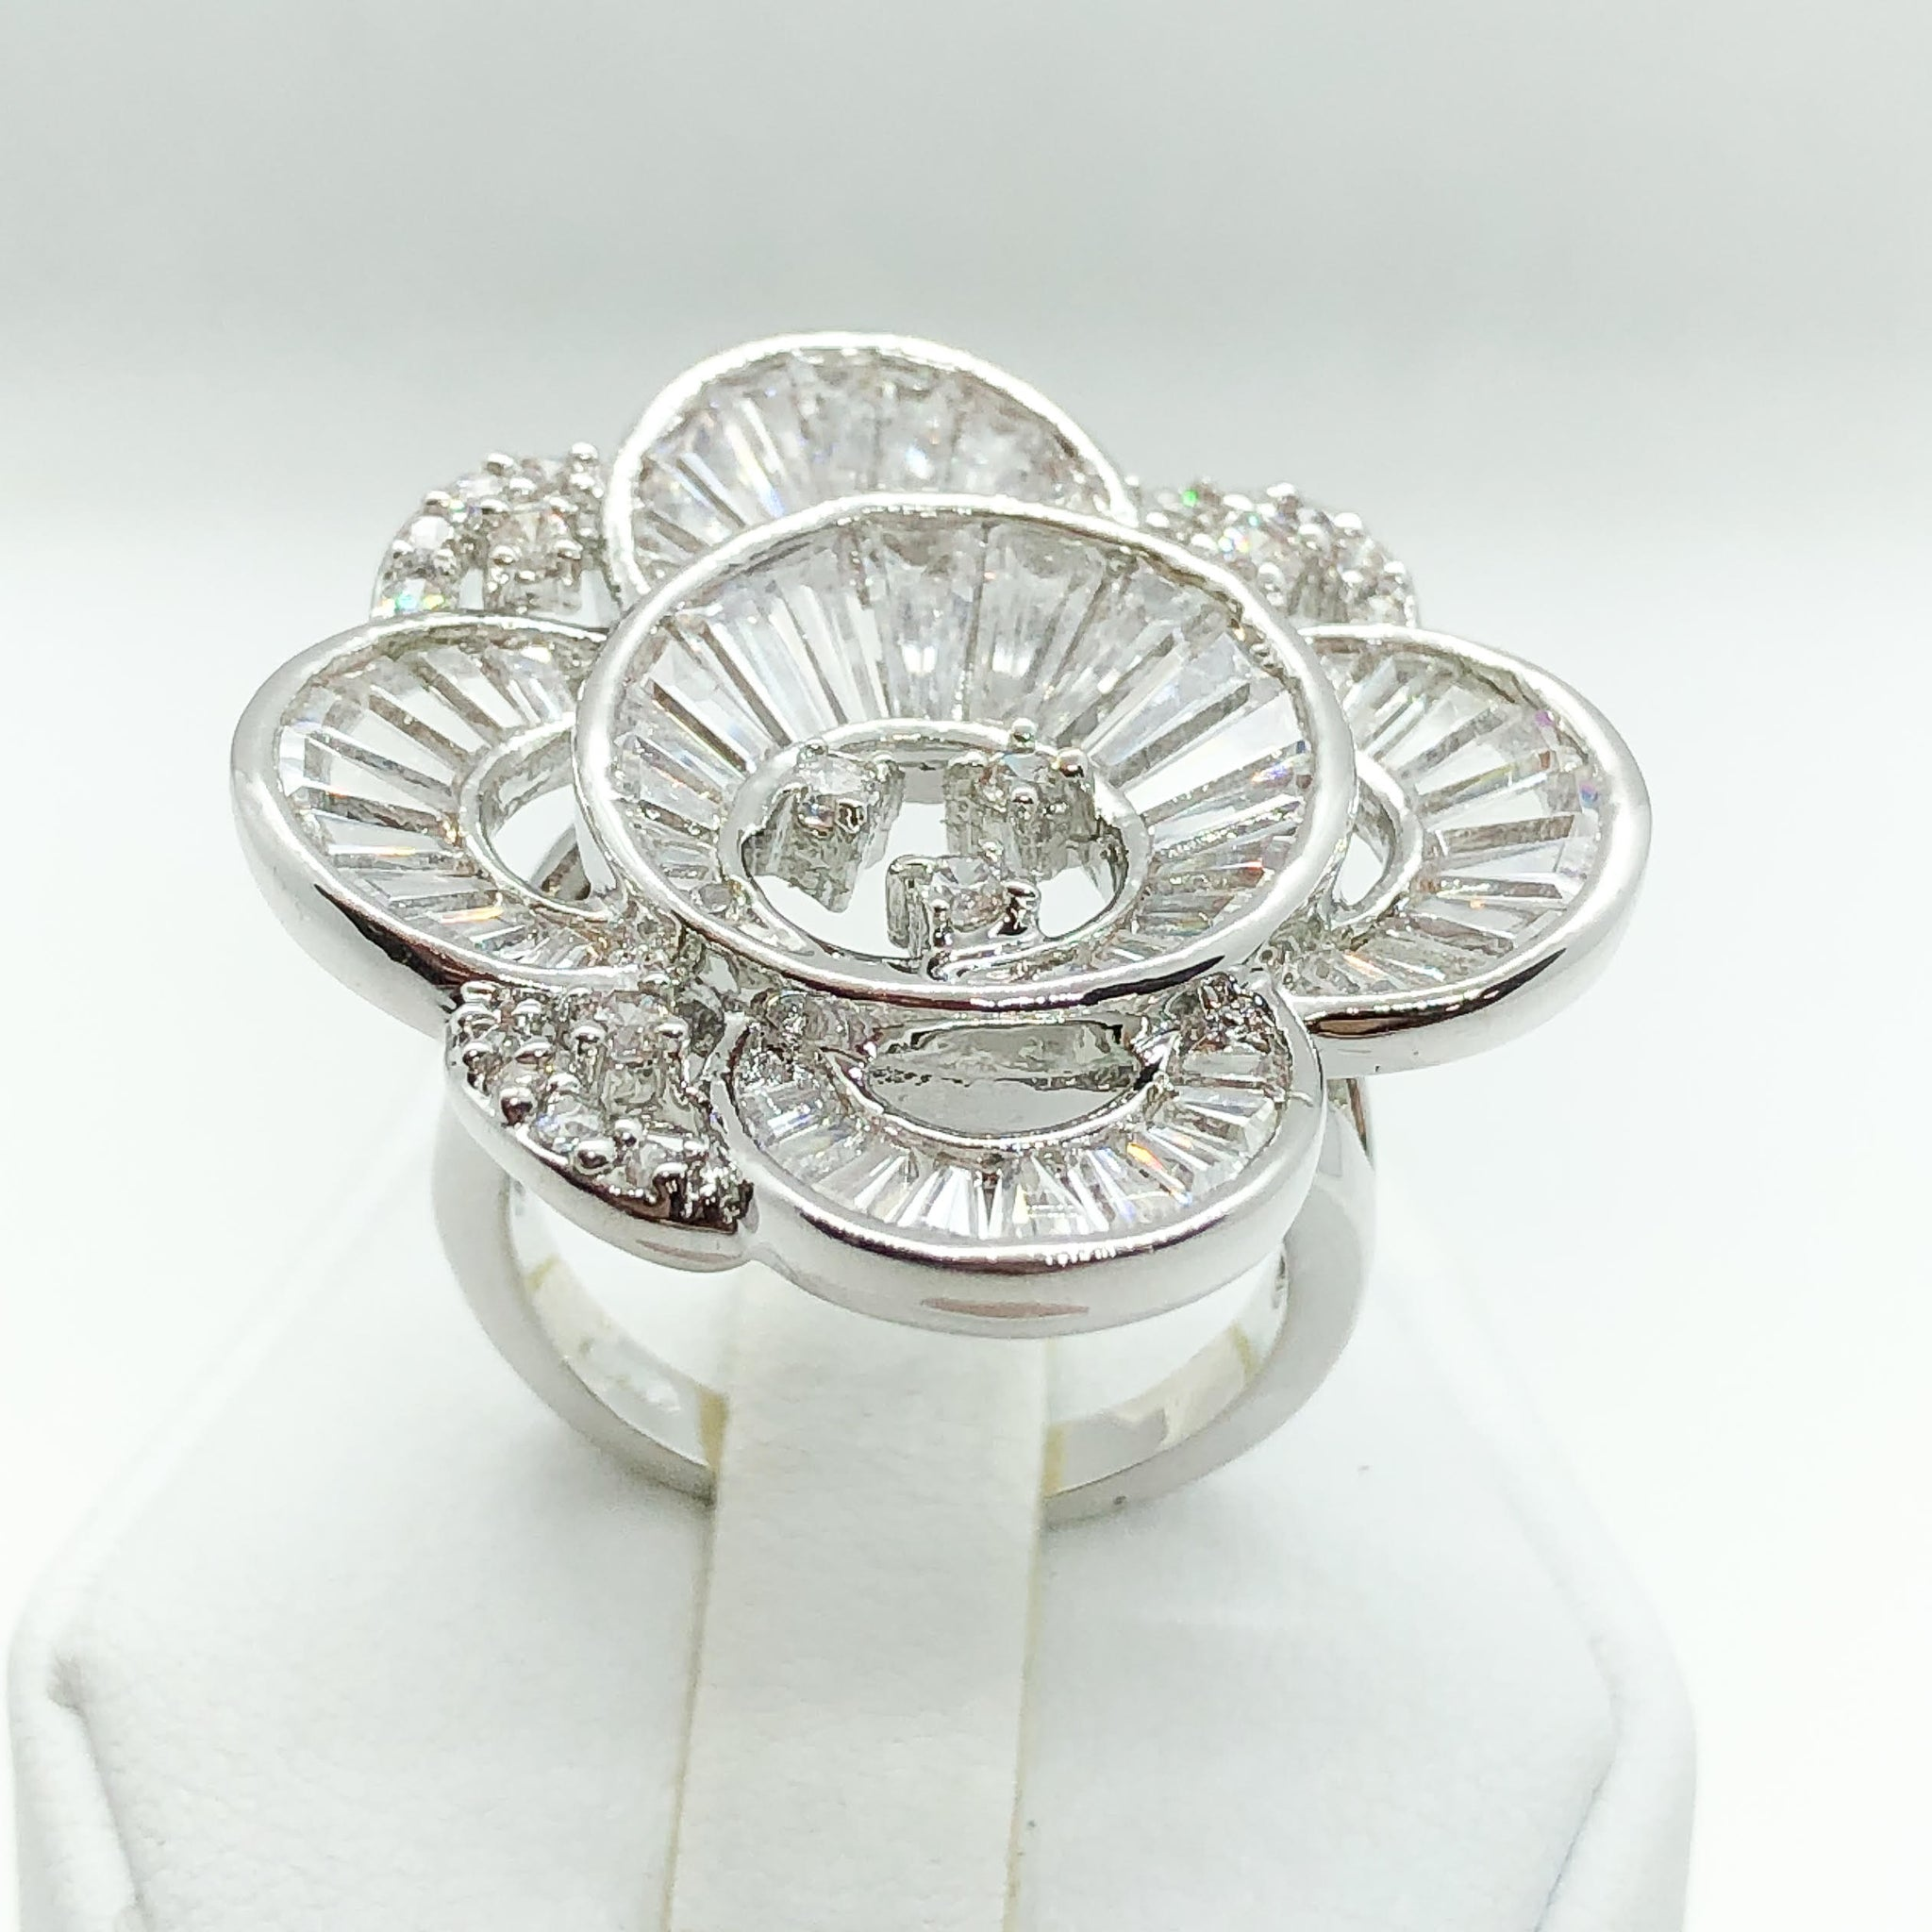 ID:R6225 Women 18K White Gold GF Jewelry Luxury Flower Design Stunning Anniversary Promise Cluster Cocktail Ring